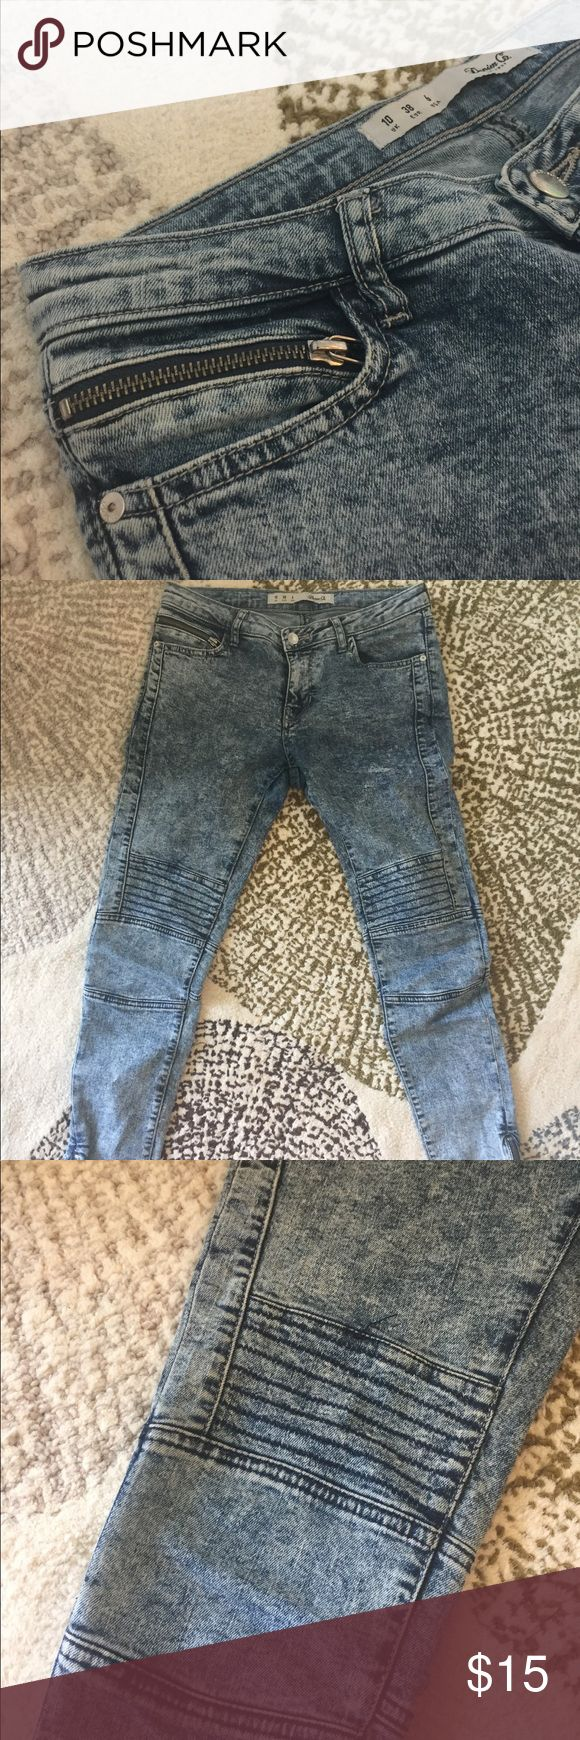 Acid-wash Moto Skinnies These Moto-style skinny jeans will give your outfit an edge. In addition to a tight fit, they feature vertical zippers along the exterior of each leg and zipper detail along the front pockets. Zipper hardware is a classic metal as shown. The tag states these jeans are a a size US 6, however they fit more like a size 4. Perfect condition, like new! Primark Jeans Skinny